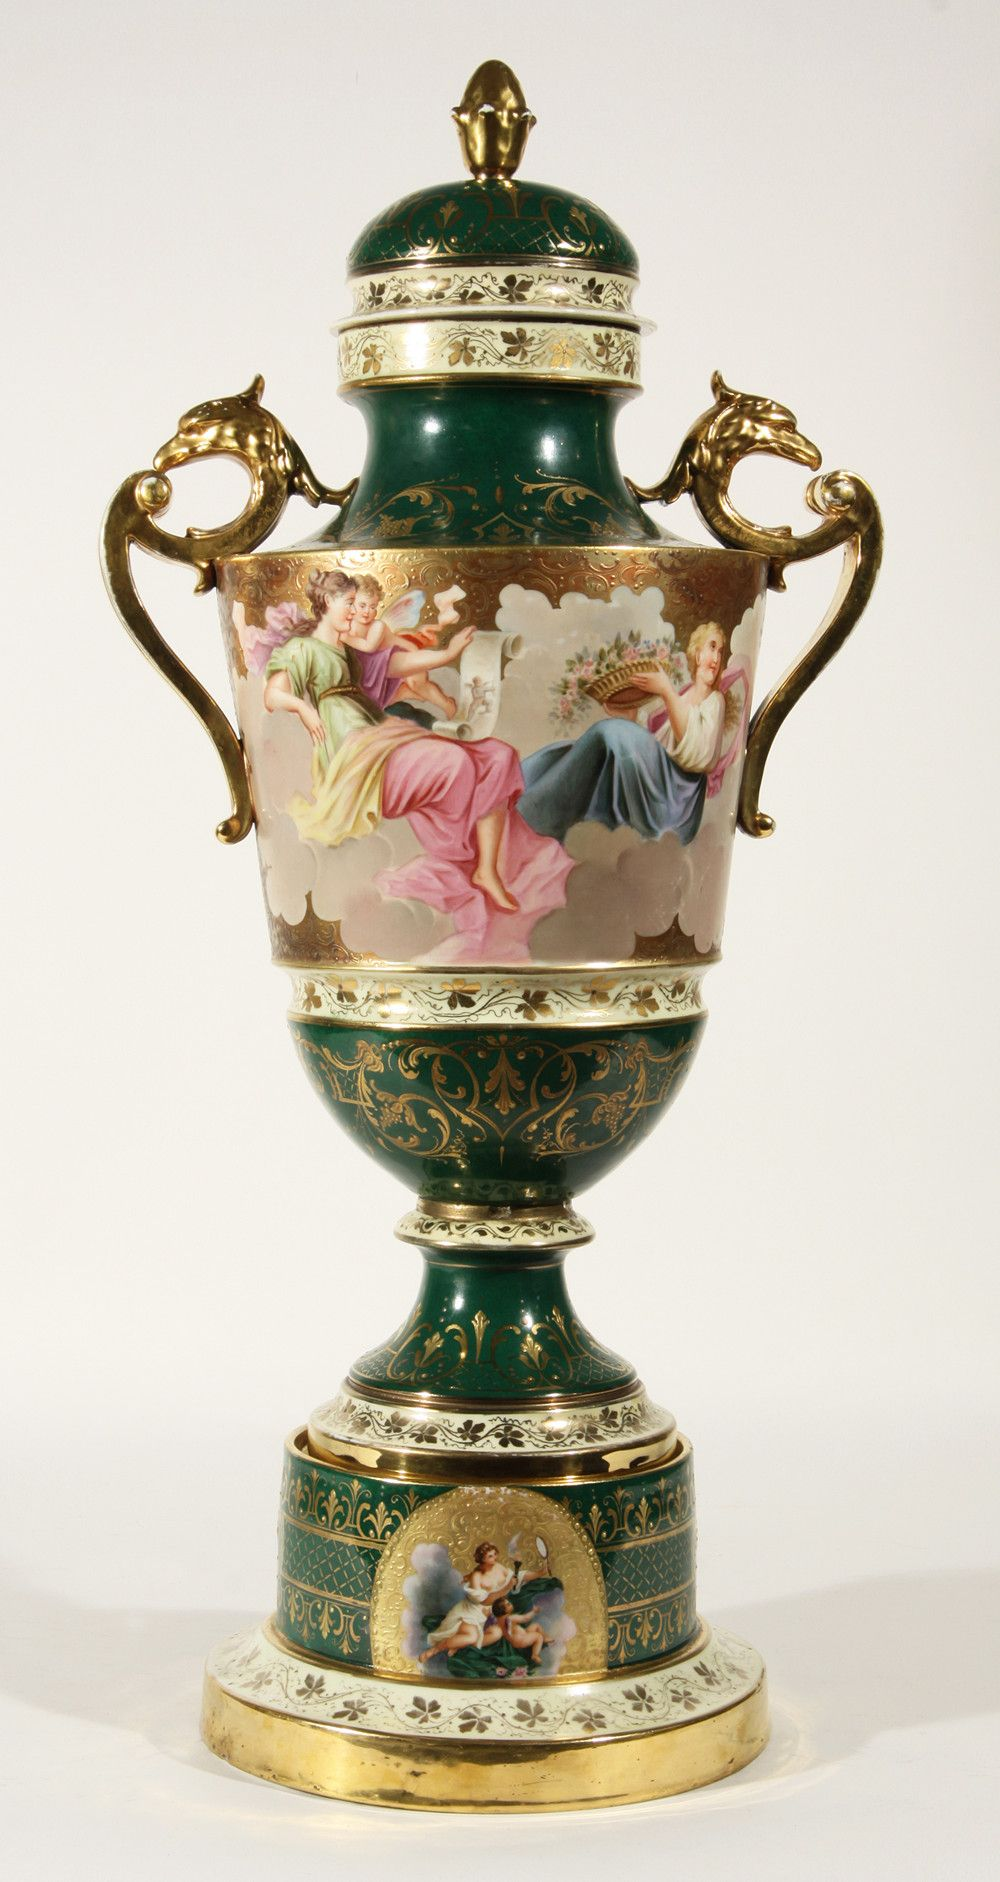 "A ROYAL VIENNA VASE, 19th C., of urn shape, mounted by gilded handles in the shape of griffin heads, the hunter-green body decorated with scrolling gilt patterns with white bands painted in an ivy motif, the central band hand-painted with images of cherubs and maidens resting on clouds, the base marked with a blue beehive mark and signed ""E . I , Austria"""